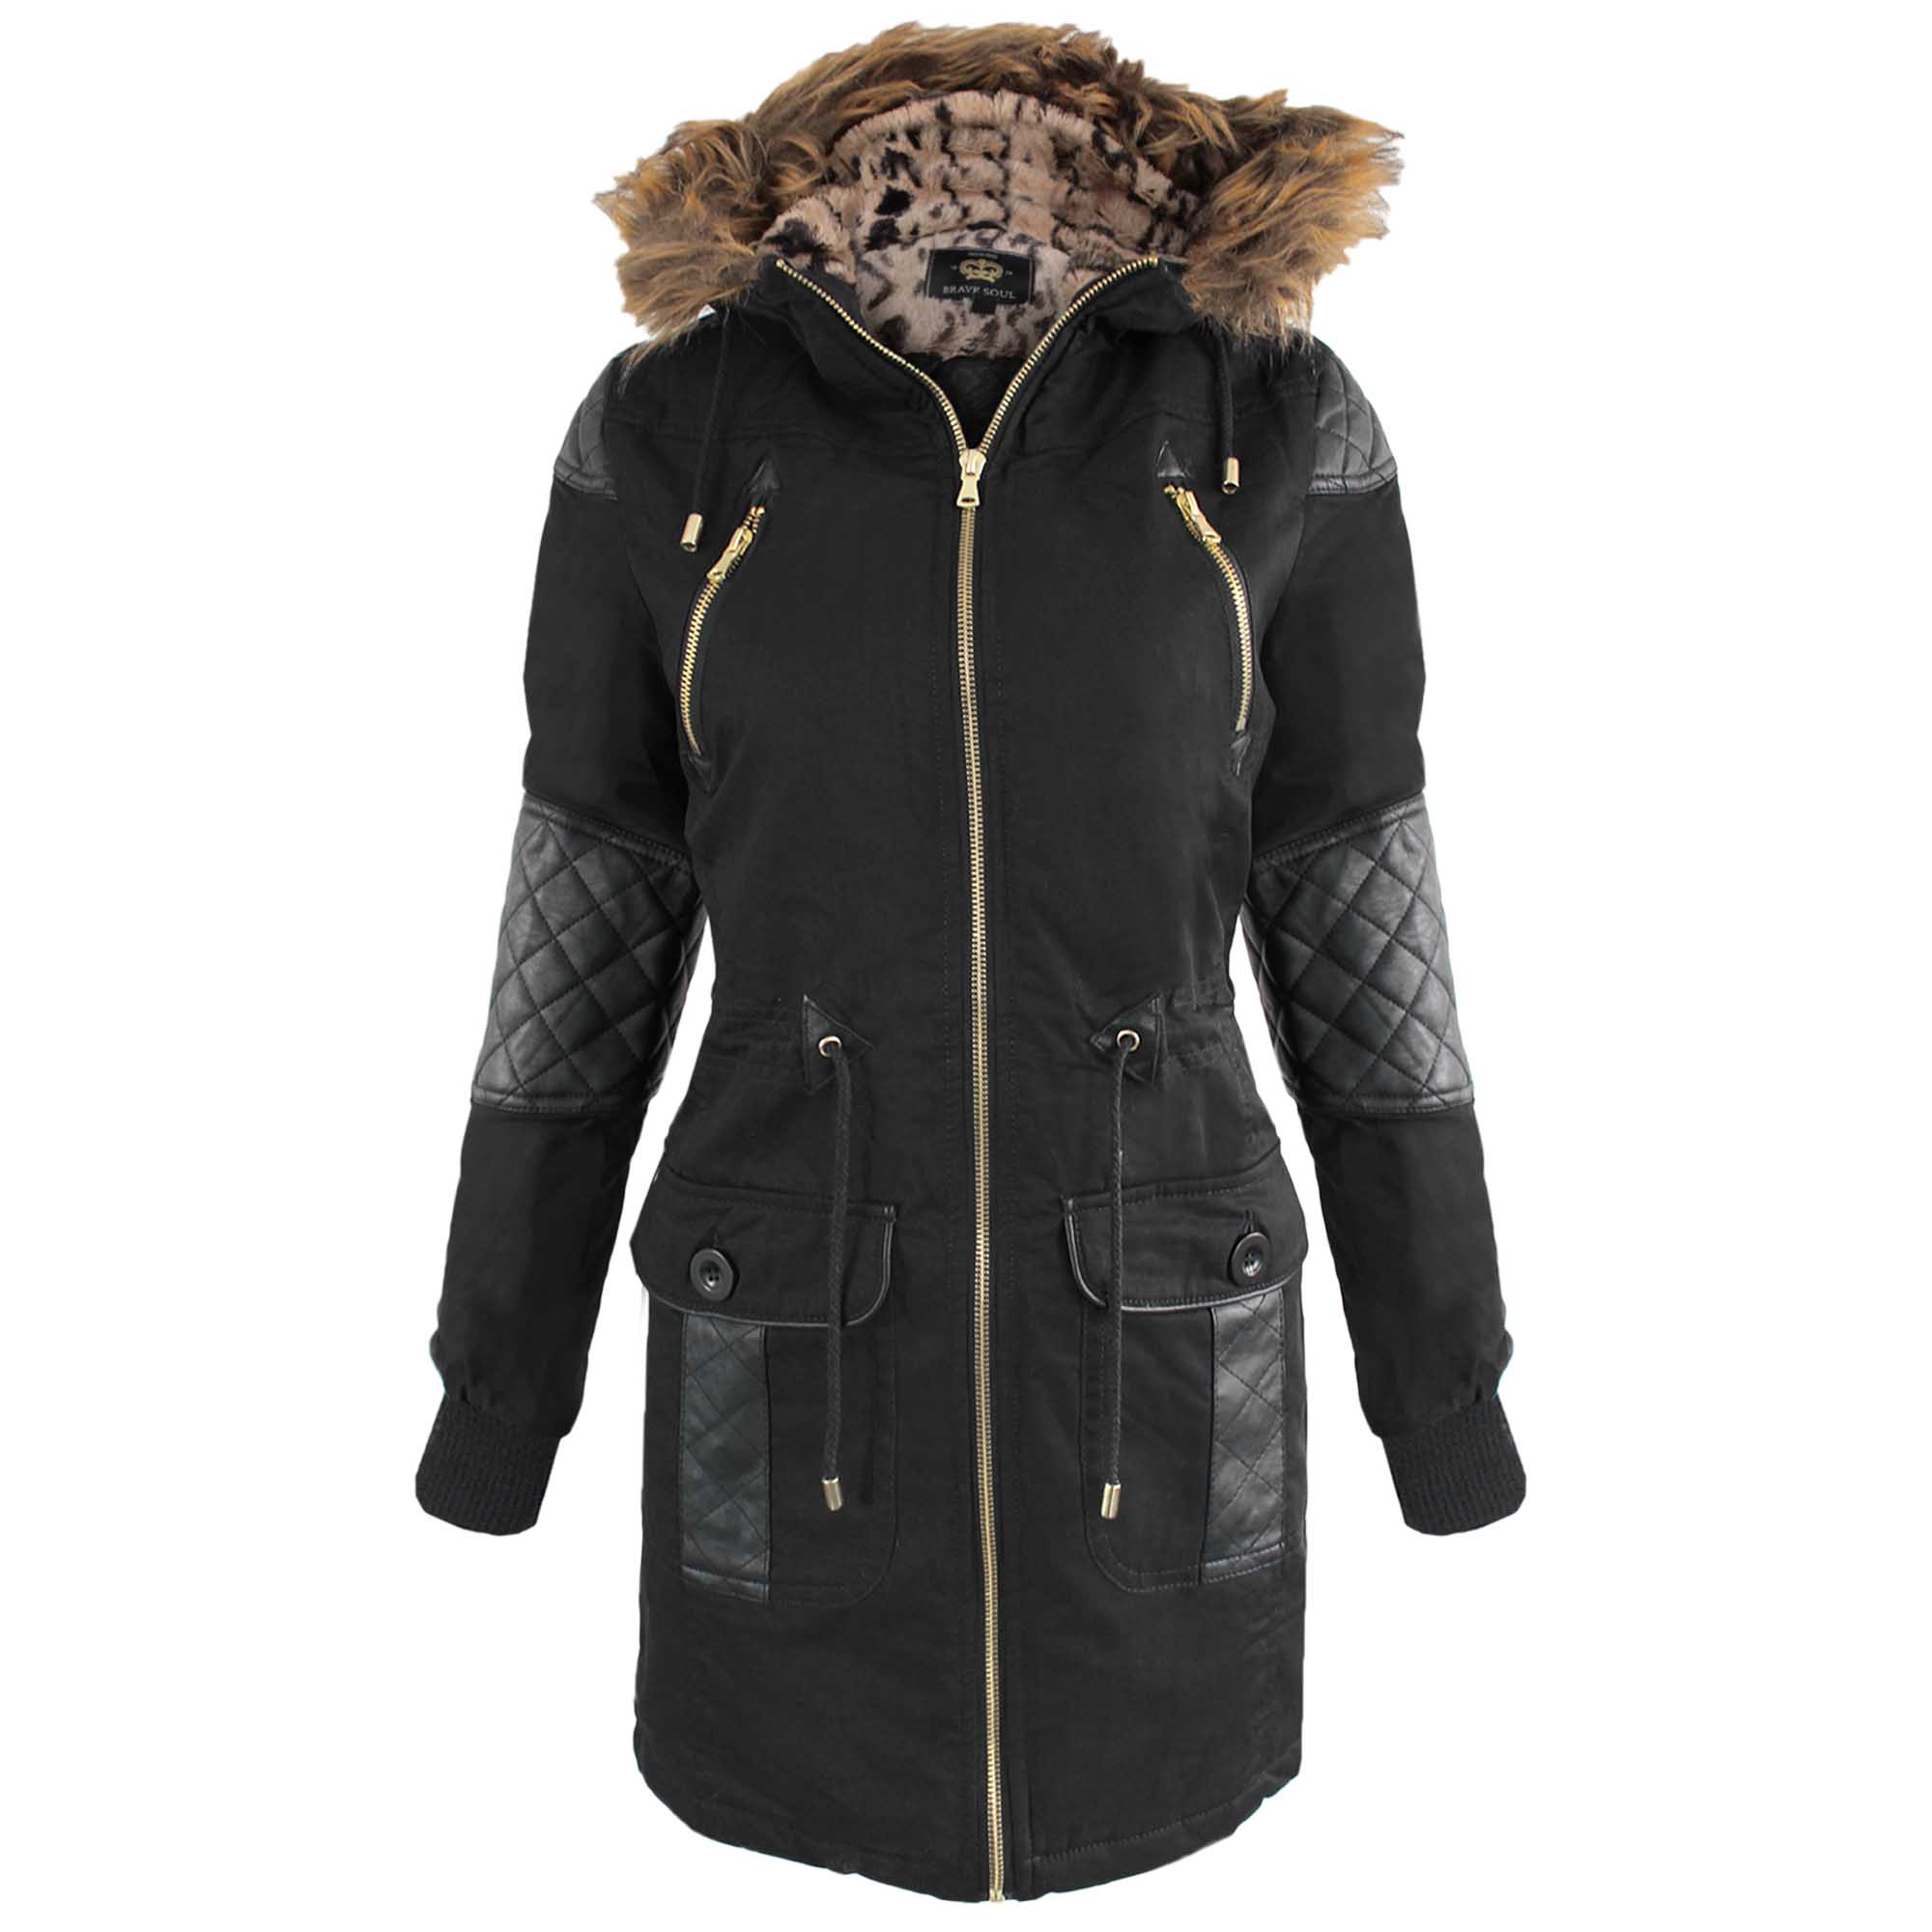 Ladies Black Parka Coat - JacketIn